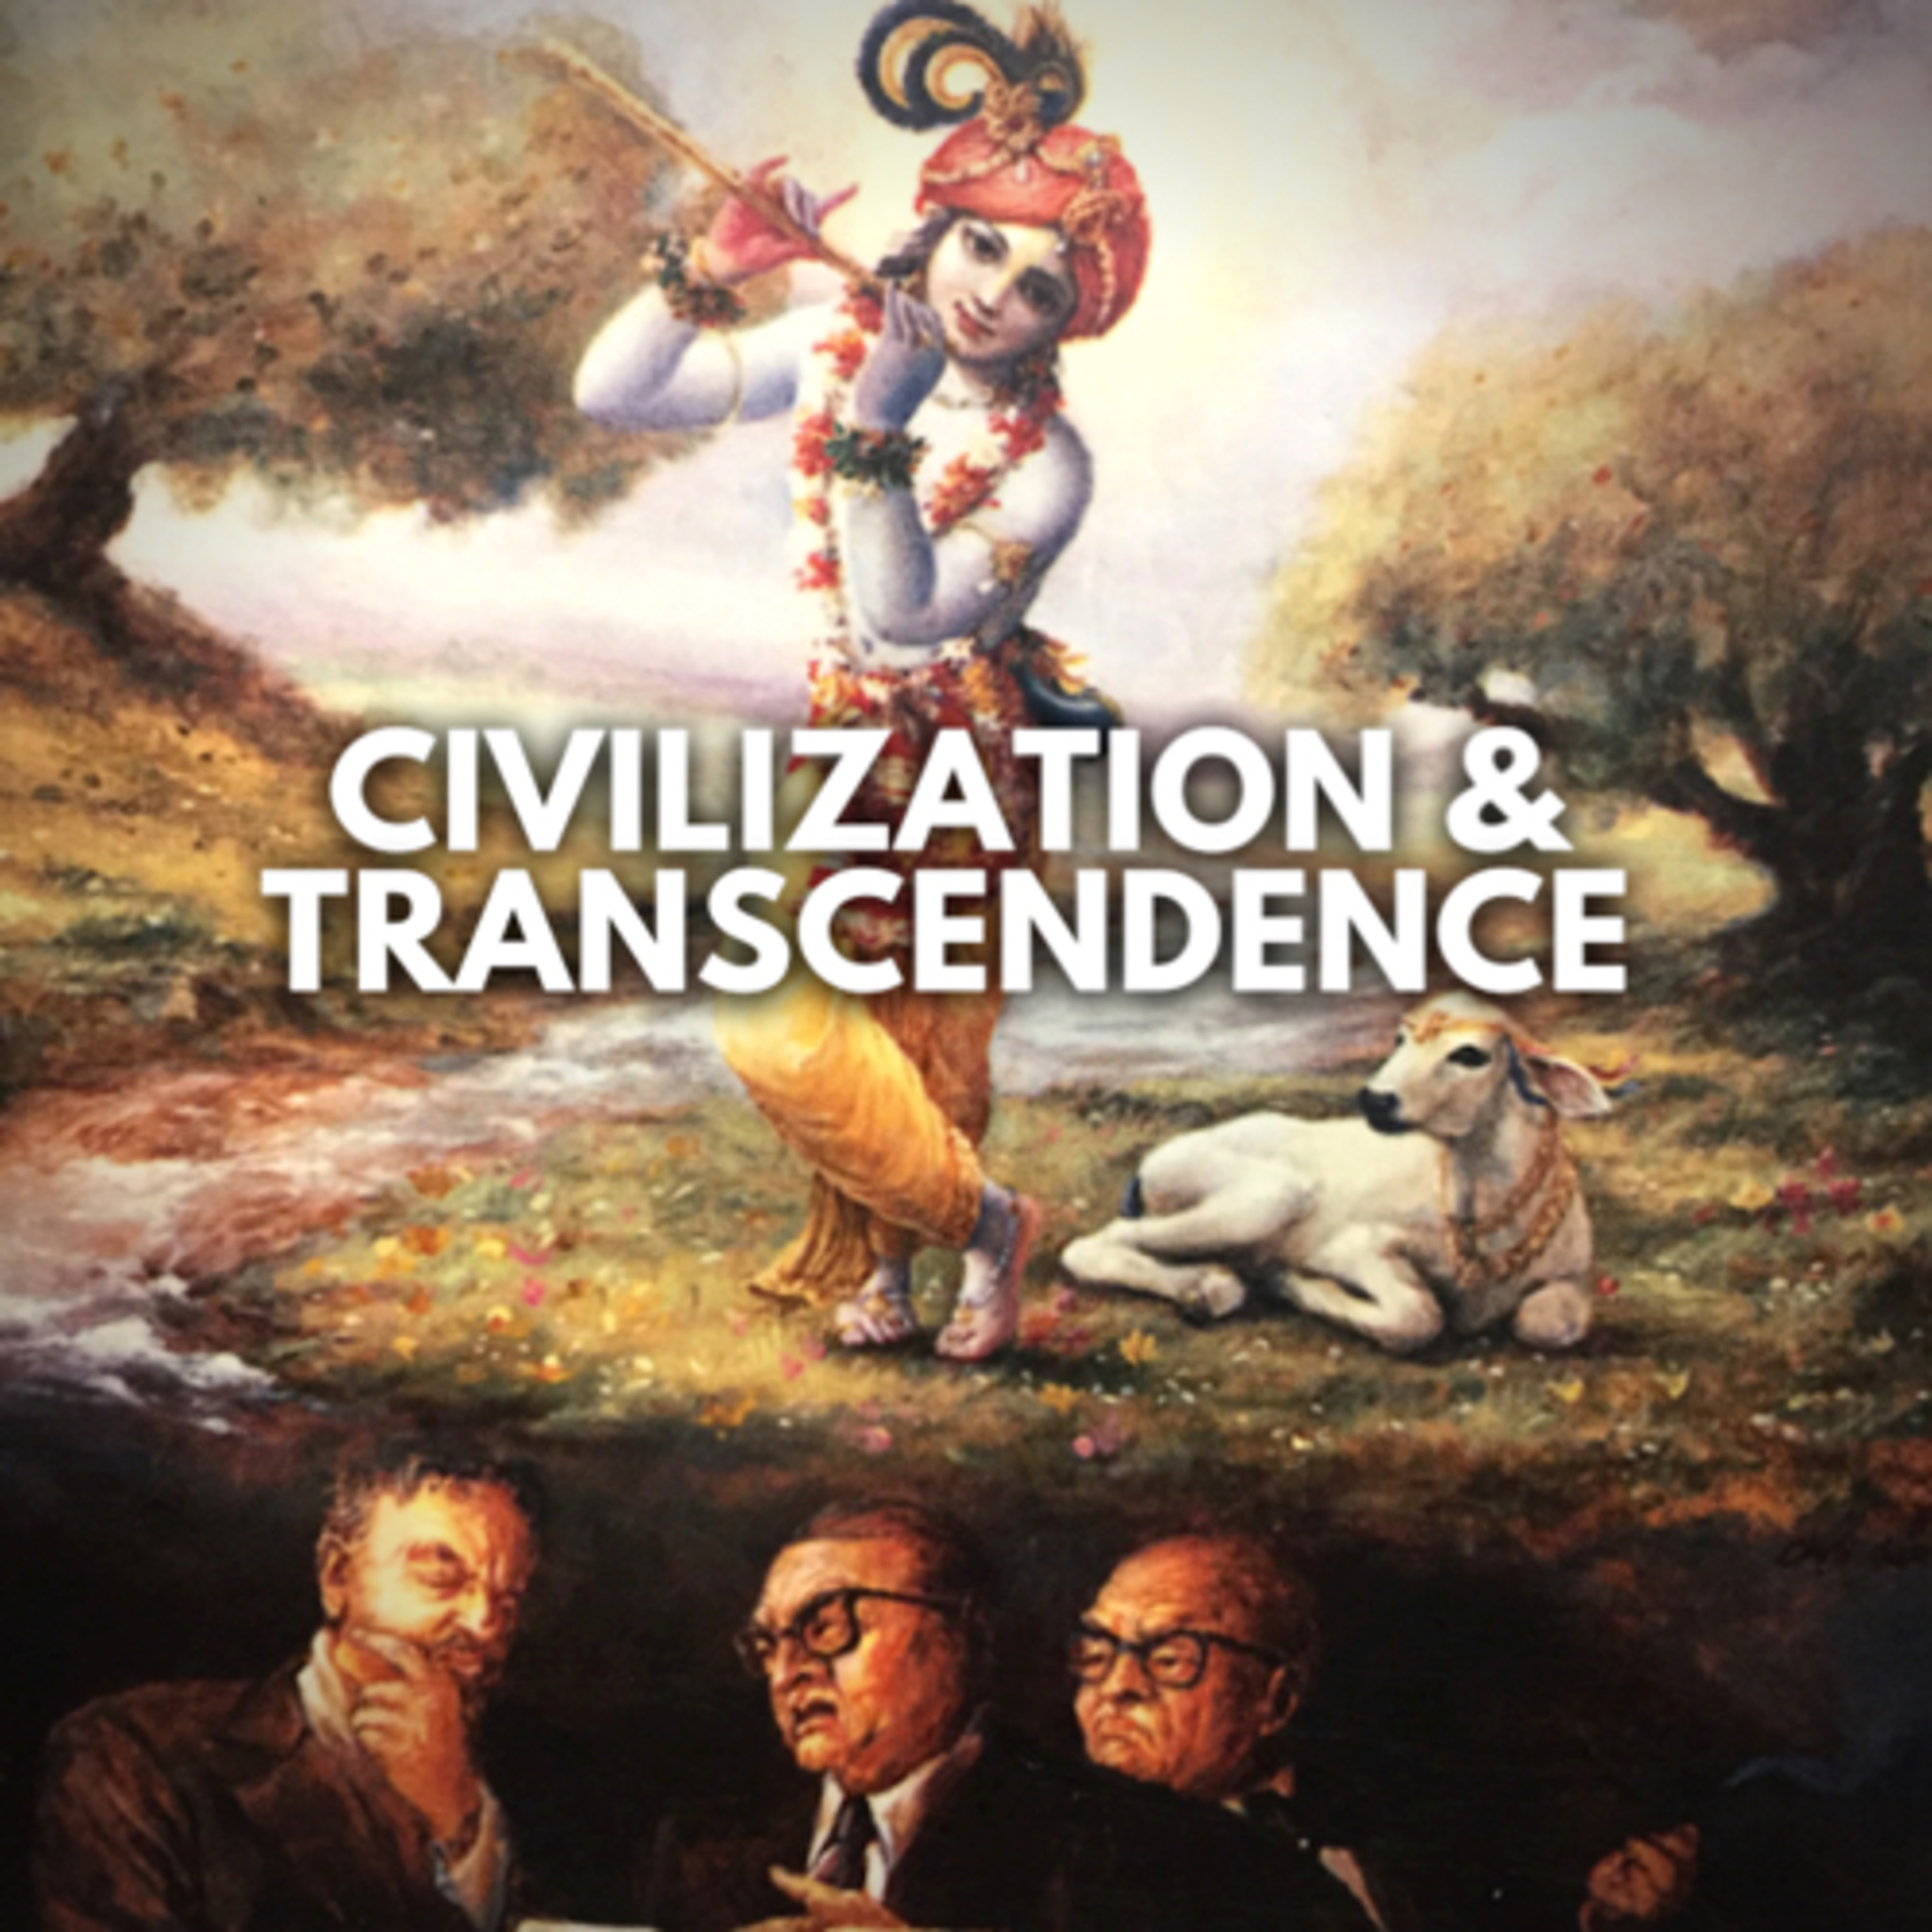 258 – Religion on the Wane & Human Being as a Rational Animal (Civilization and Transcendence, Ch 1)